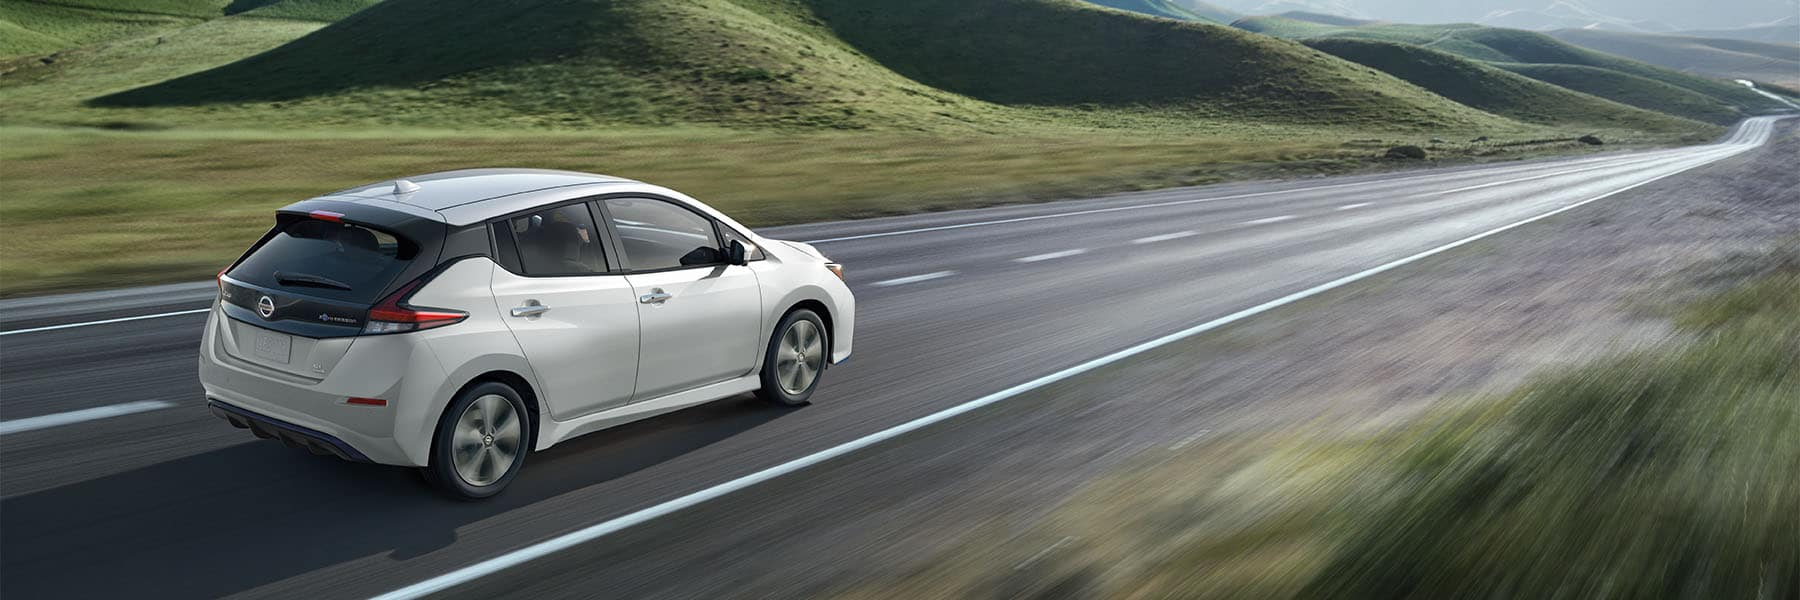 Best New 2021 Nissan Leaf Lease and Purchase Specials in Denver, CO